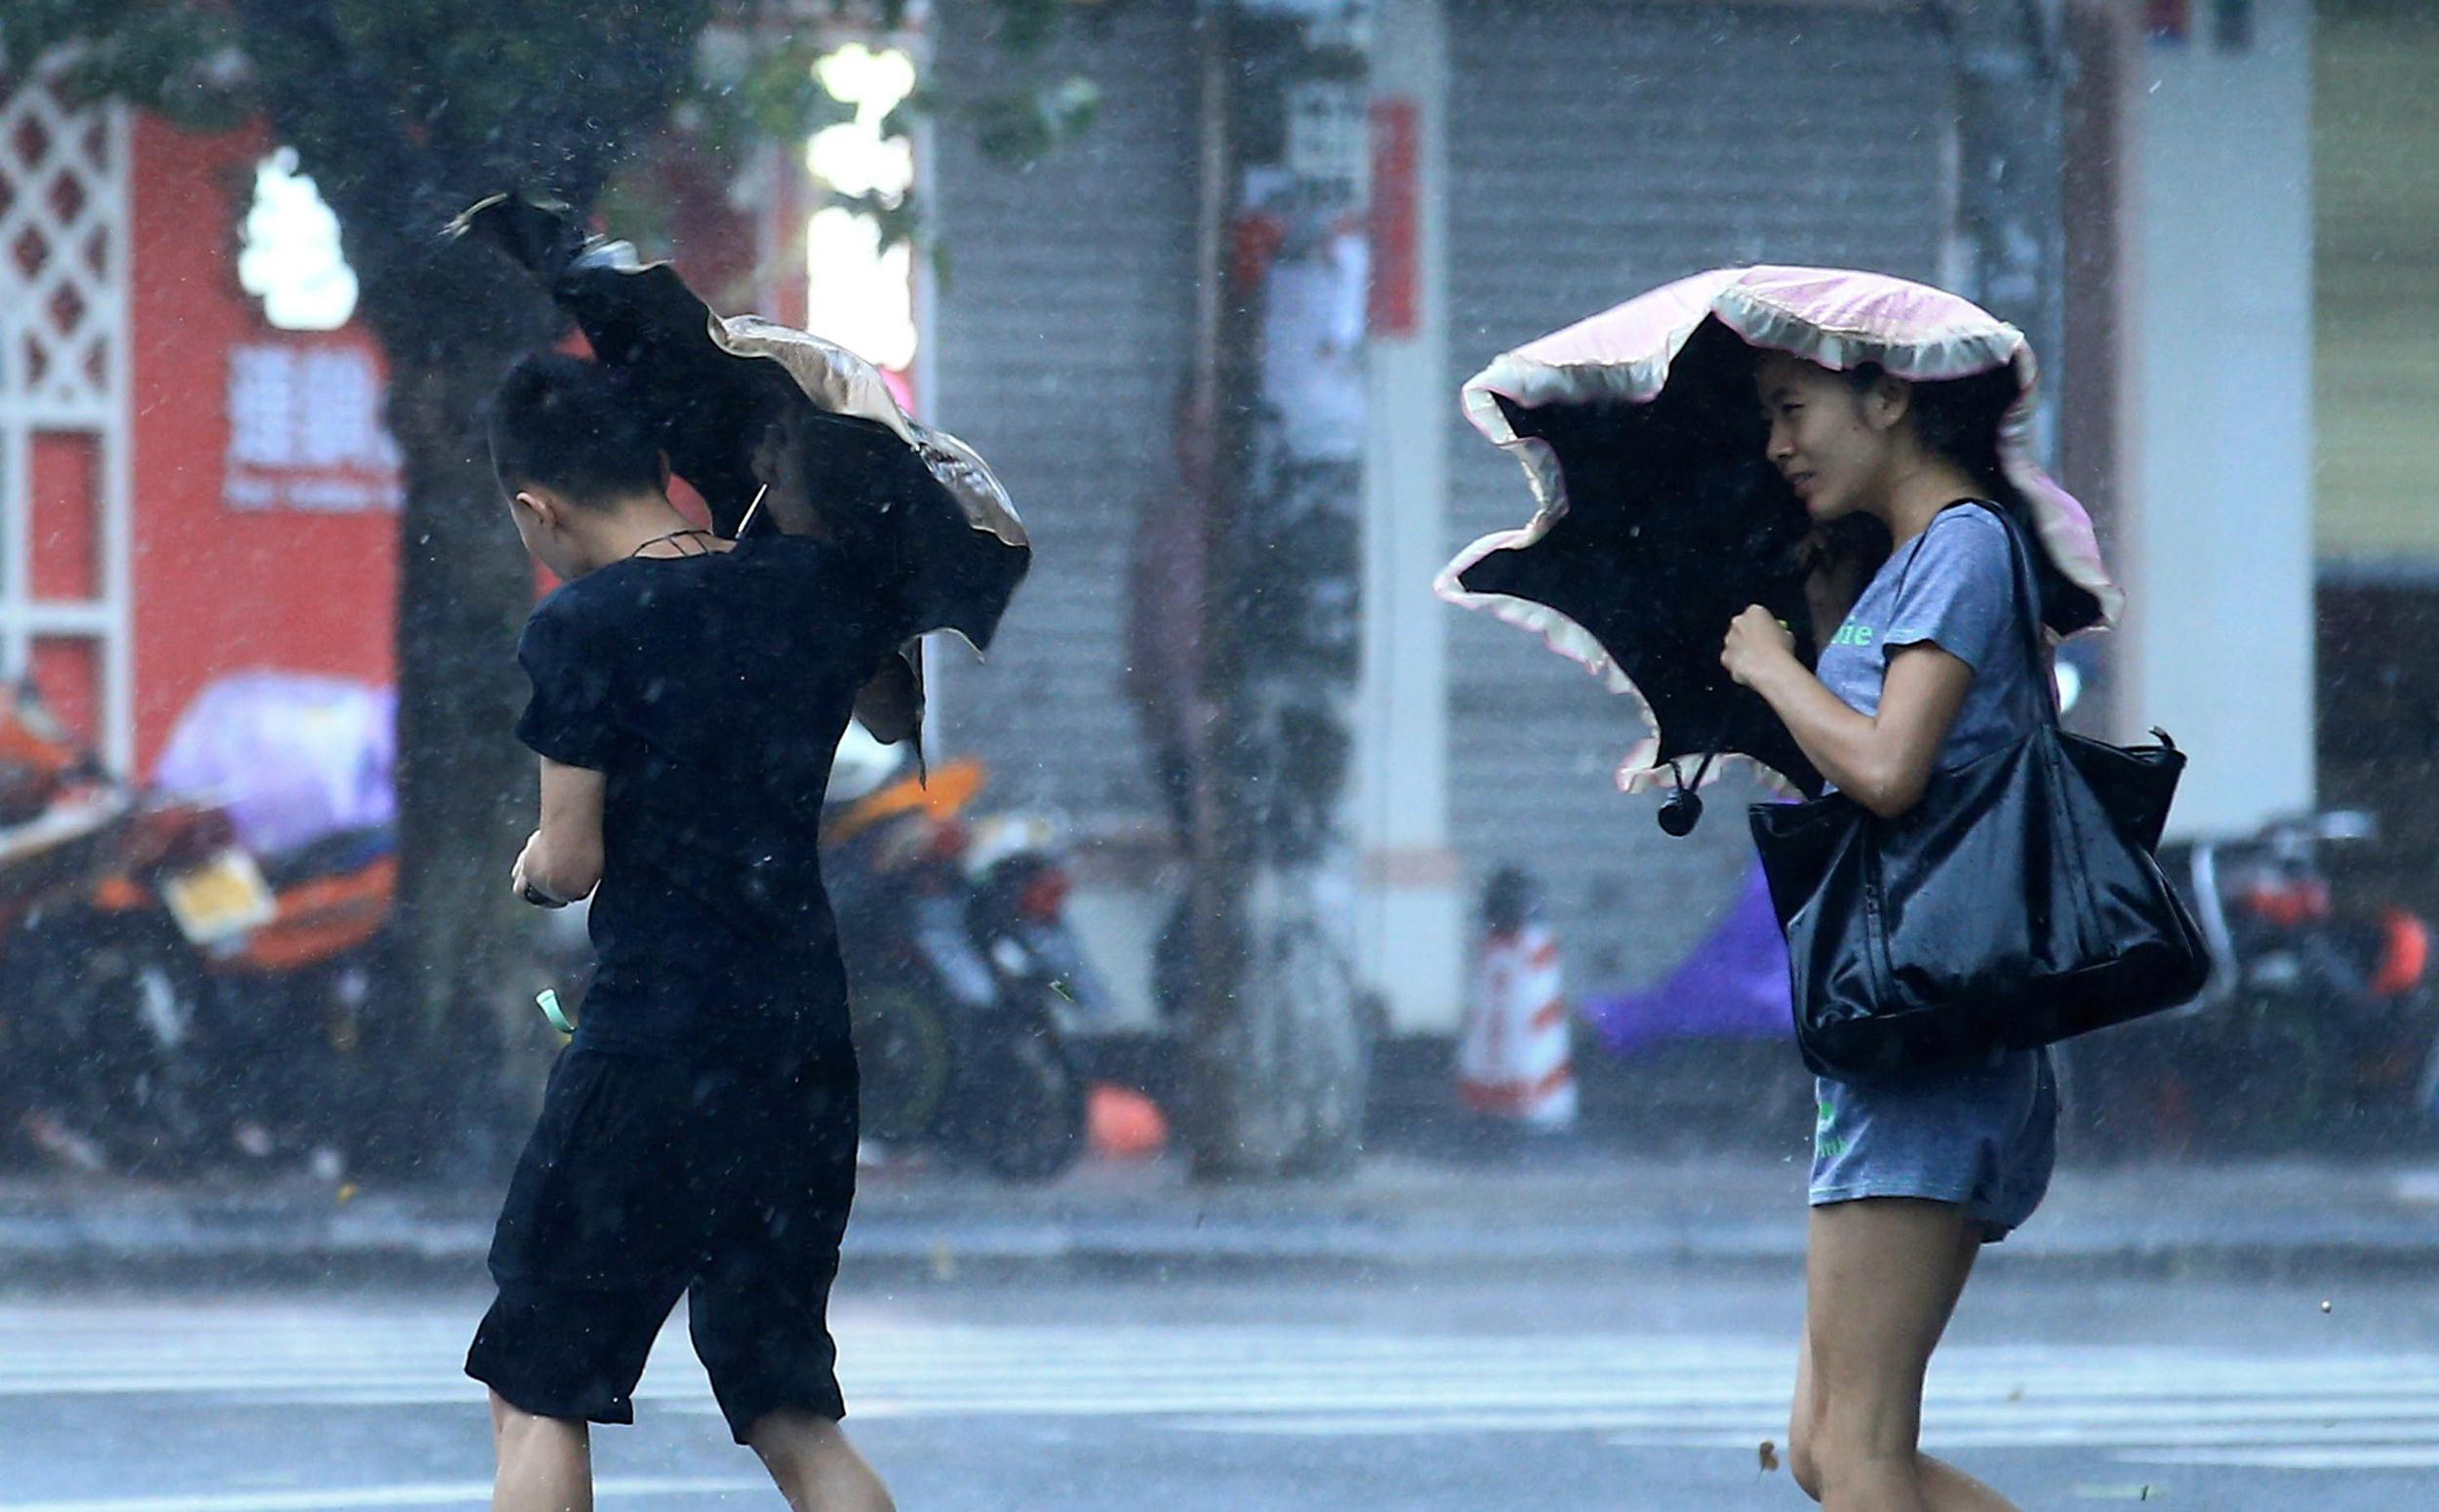 Image: Residents walk on a street in heavy rain and strong wind in Haikou, south China's Hainan province